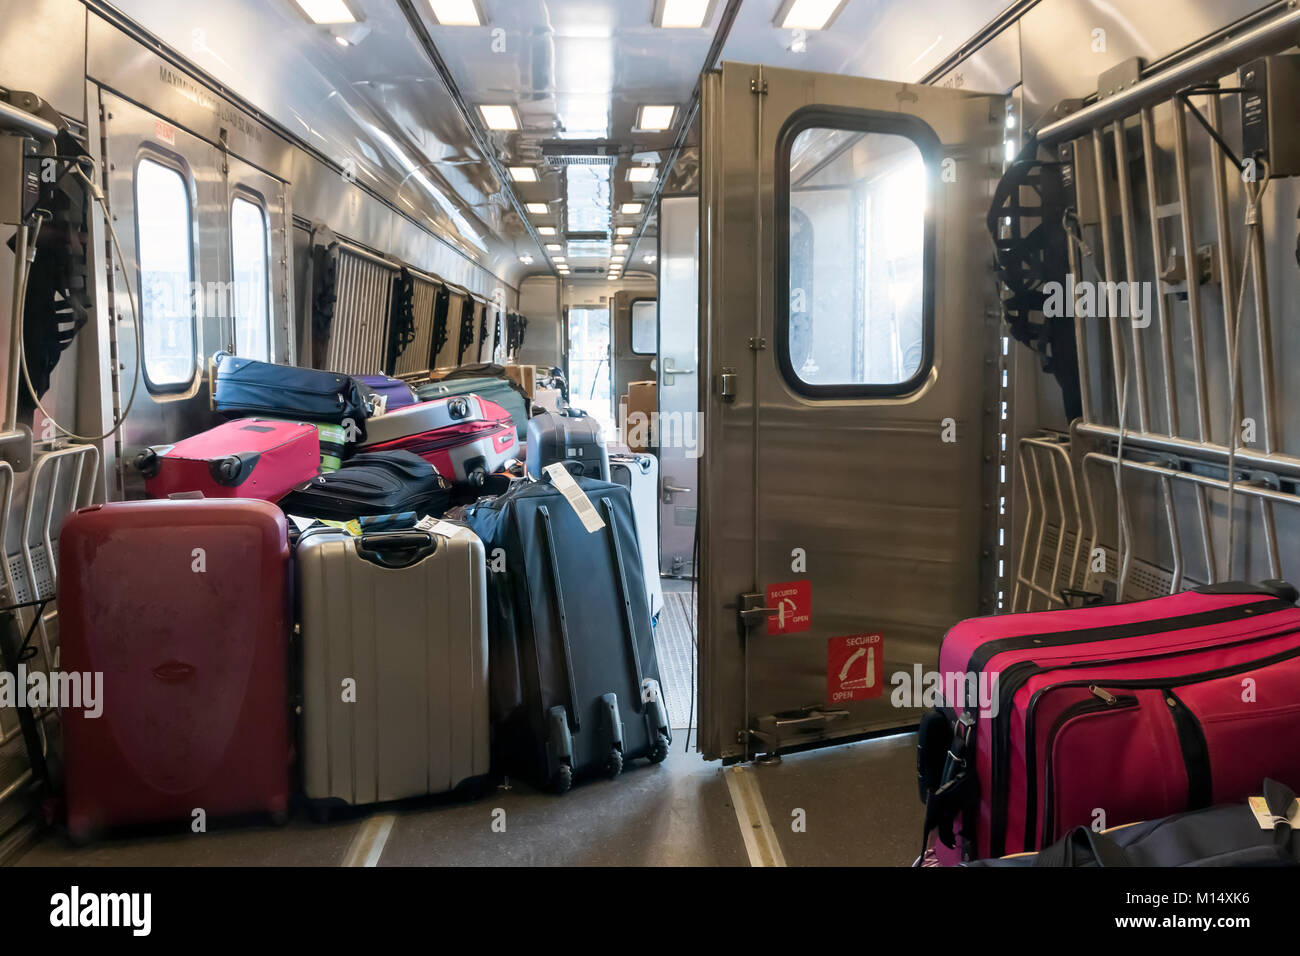 checked luggage stock photos checked luggage stock images alamy. Black Bedroom Furniture Sets. Home Design Ideas